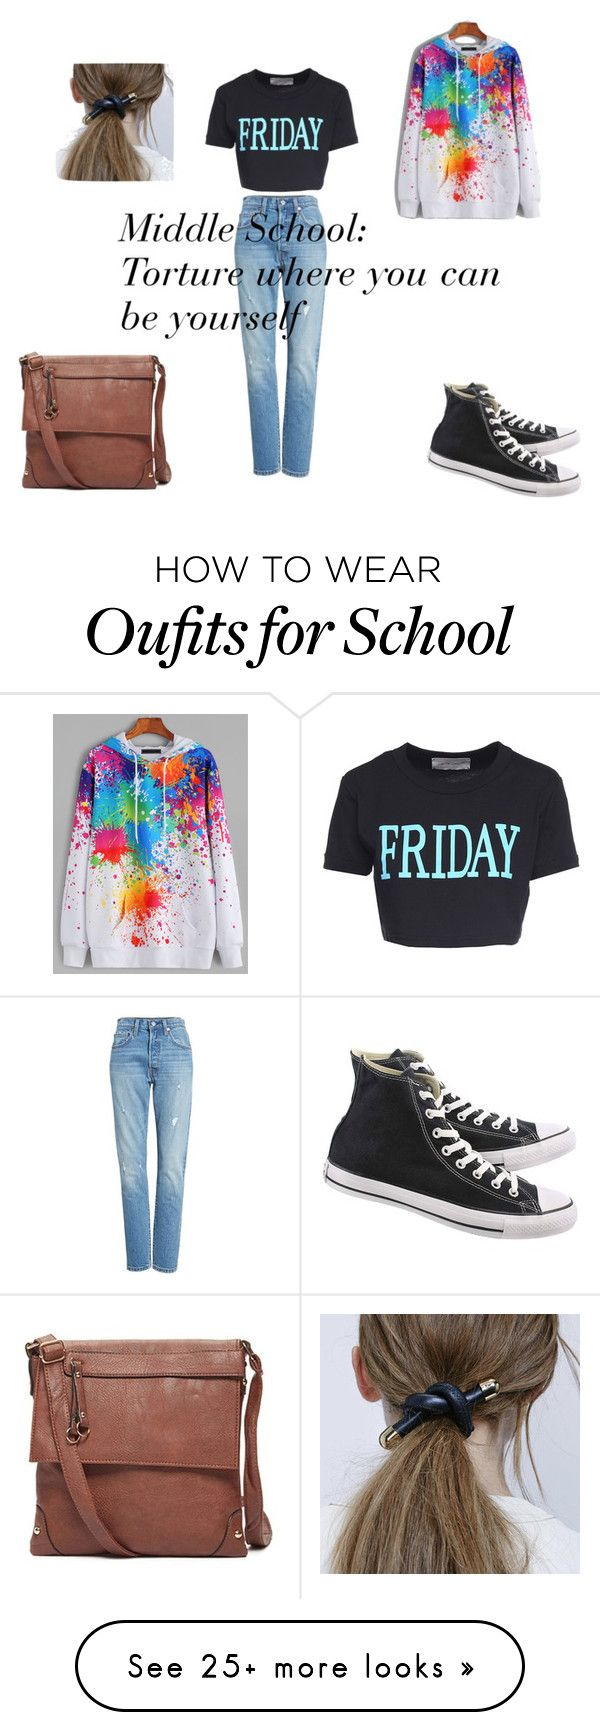 """Middle School"" by narwhalcat101 on Polyvore featuring Levi's, Alberta Ferretti, WithChic and Converse"